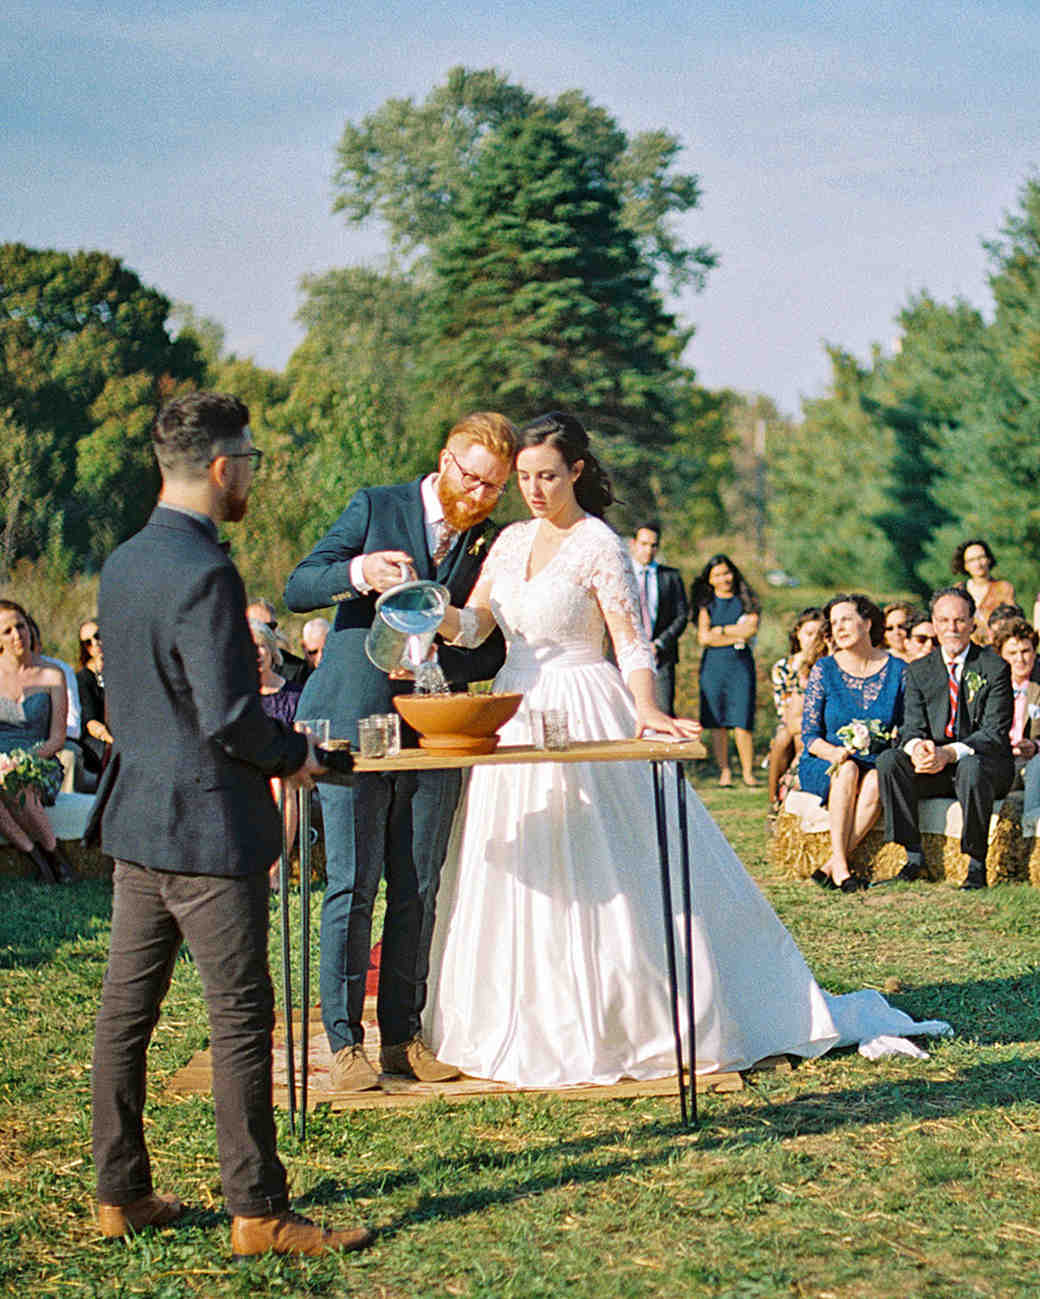 rachel elijah wedding ceremony watering